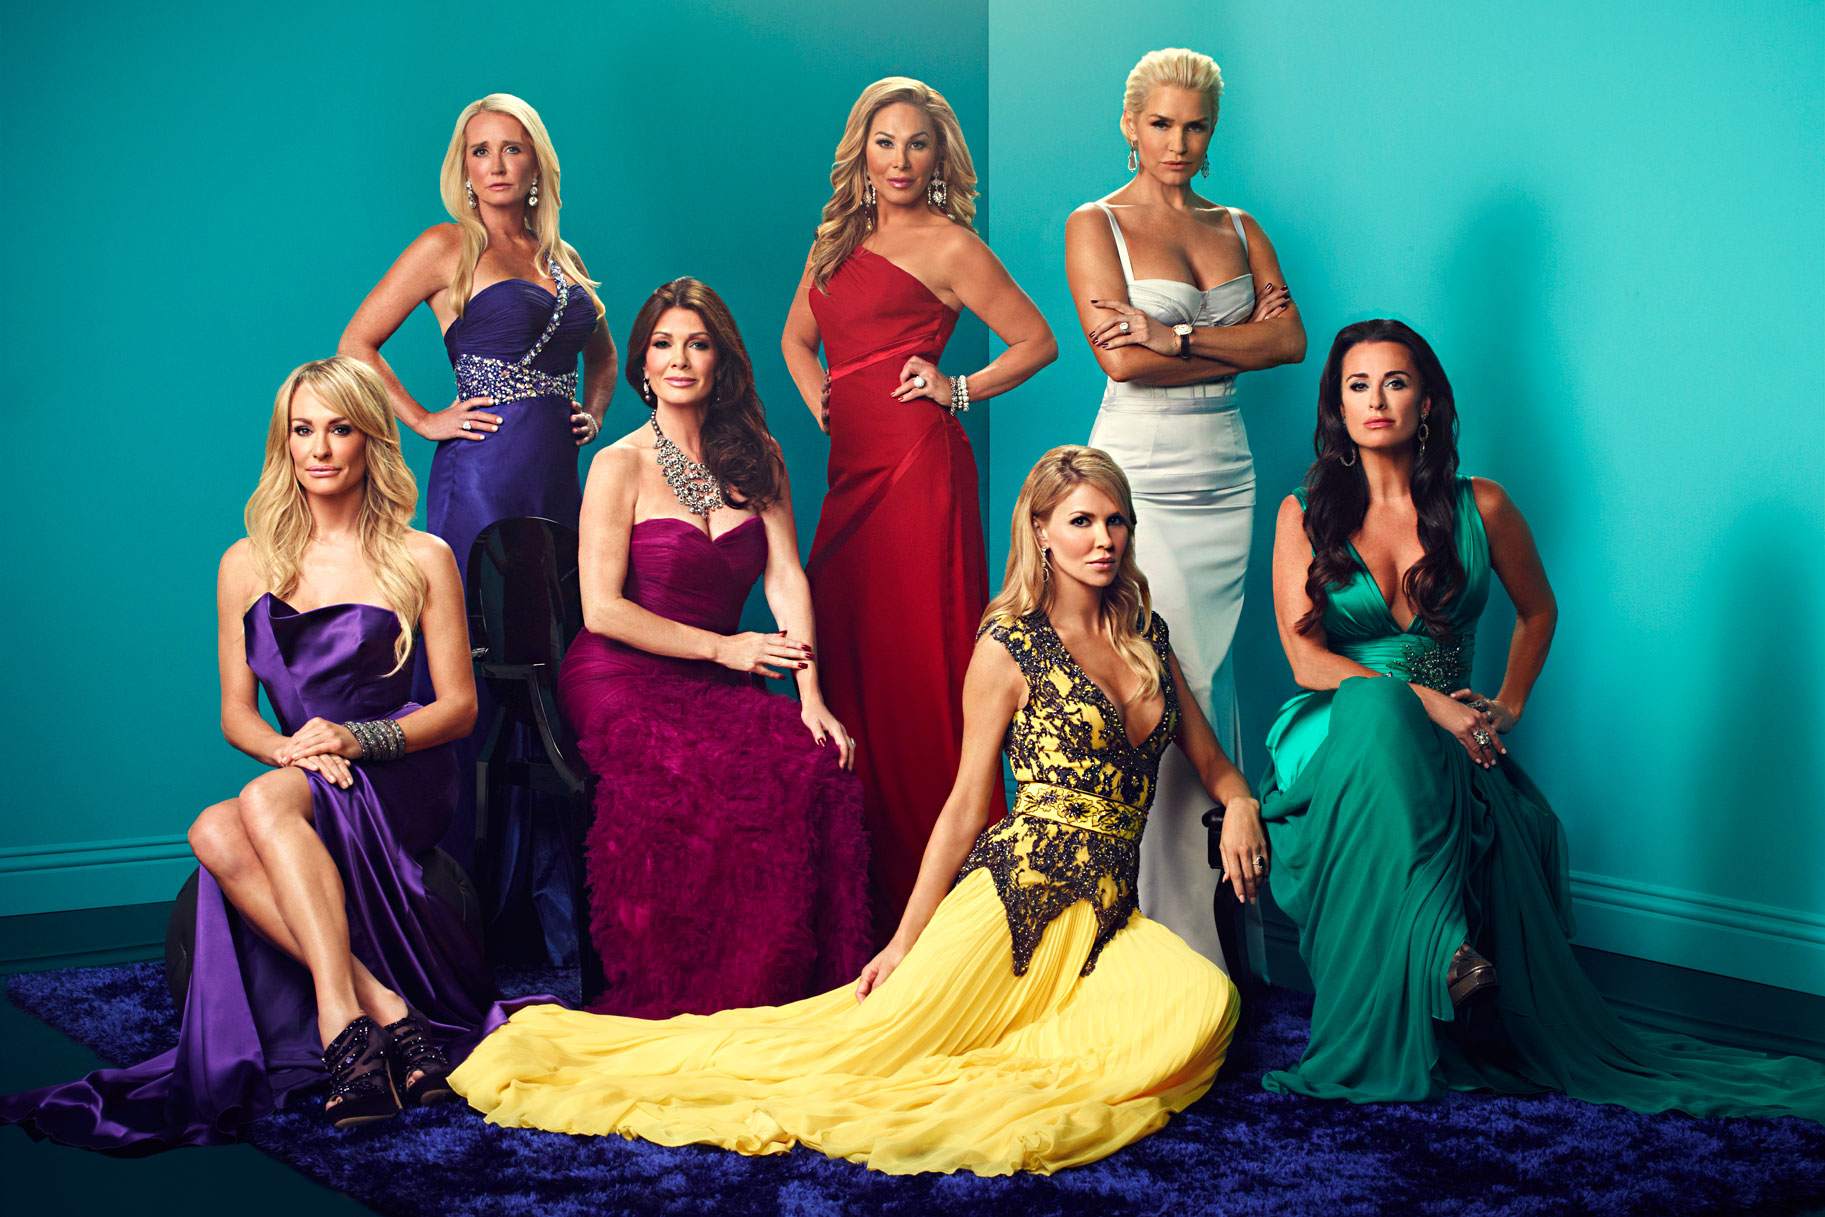 Real Housewives of Beverly Hills 2013 Episode 8 Recap Vanderpump Rules